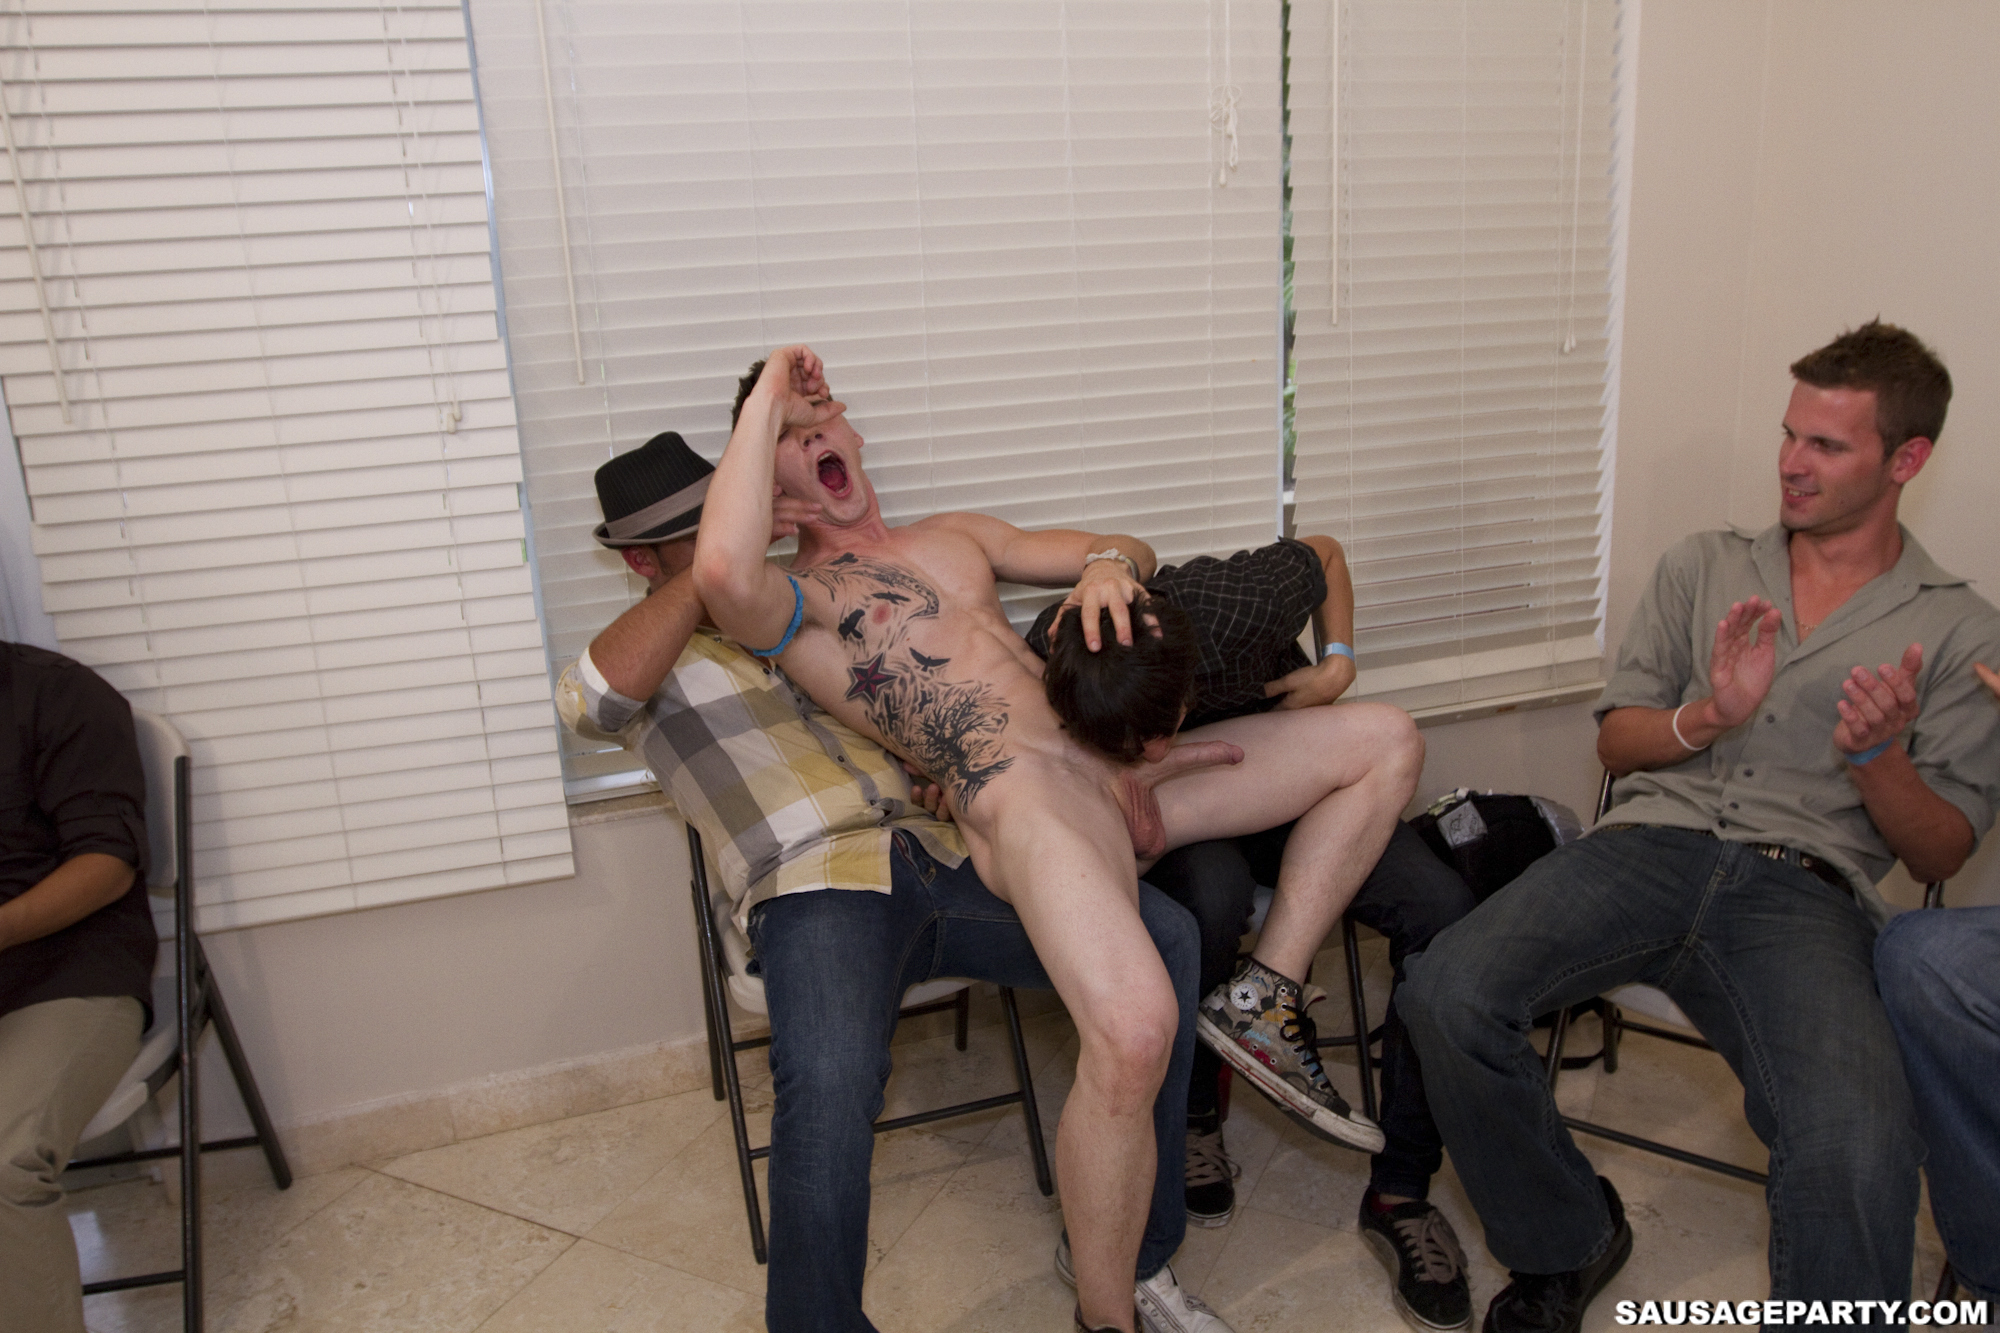 Movies of gay anal punishment one of the